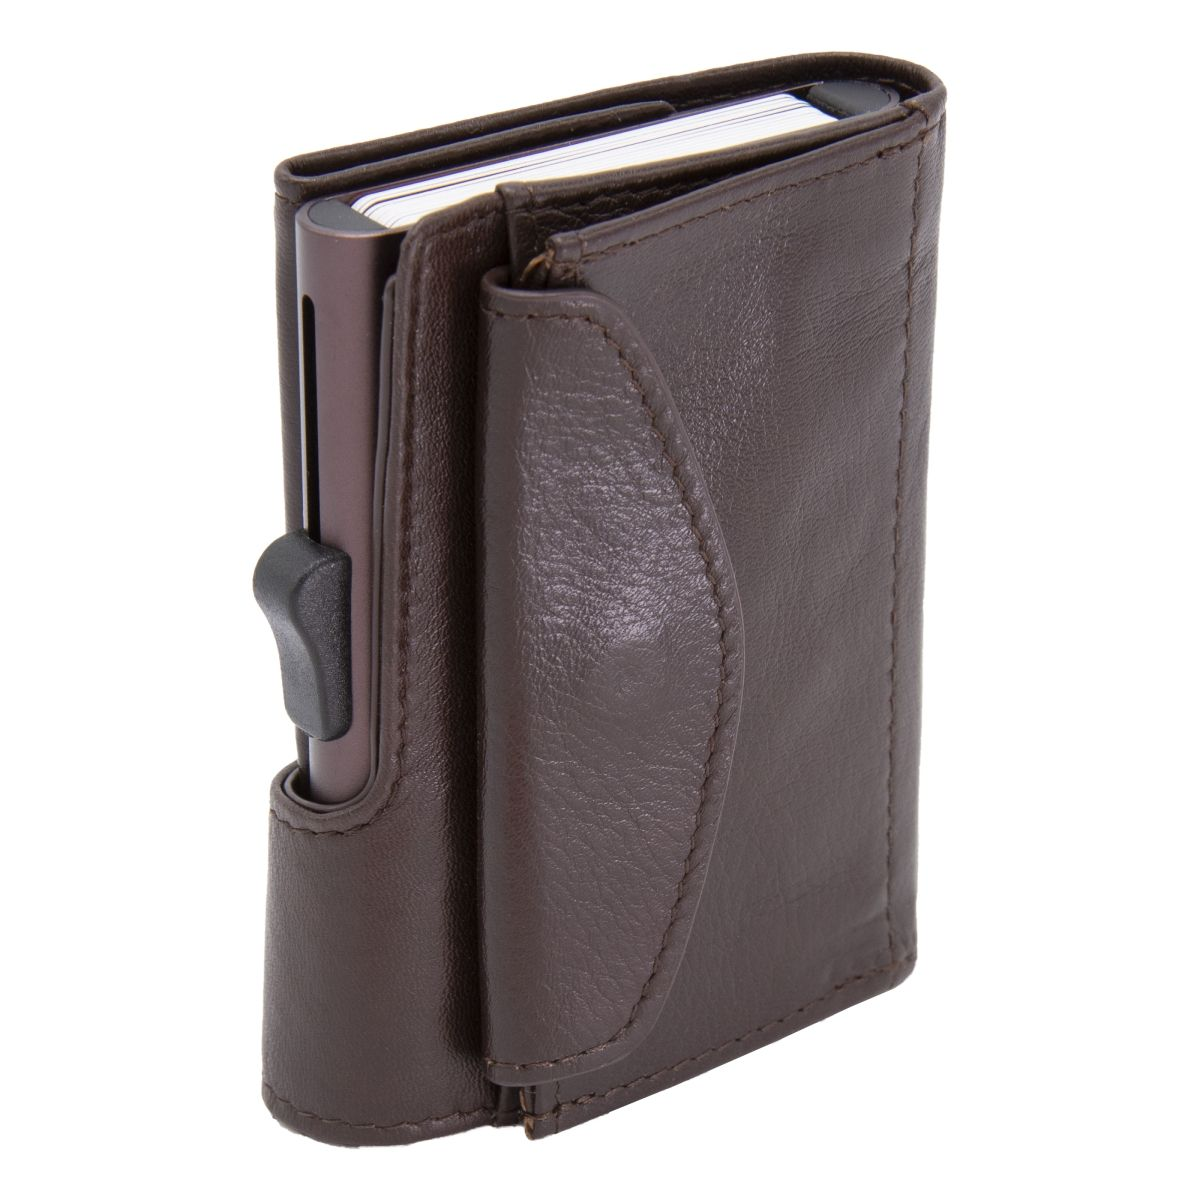 C-Secure XL Aluminum Wallet with Vegetable Genuine Leather and Coins Pocket - Mogano Brown